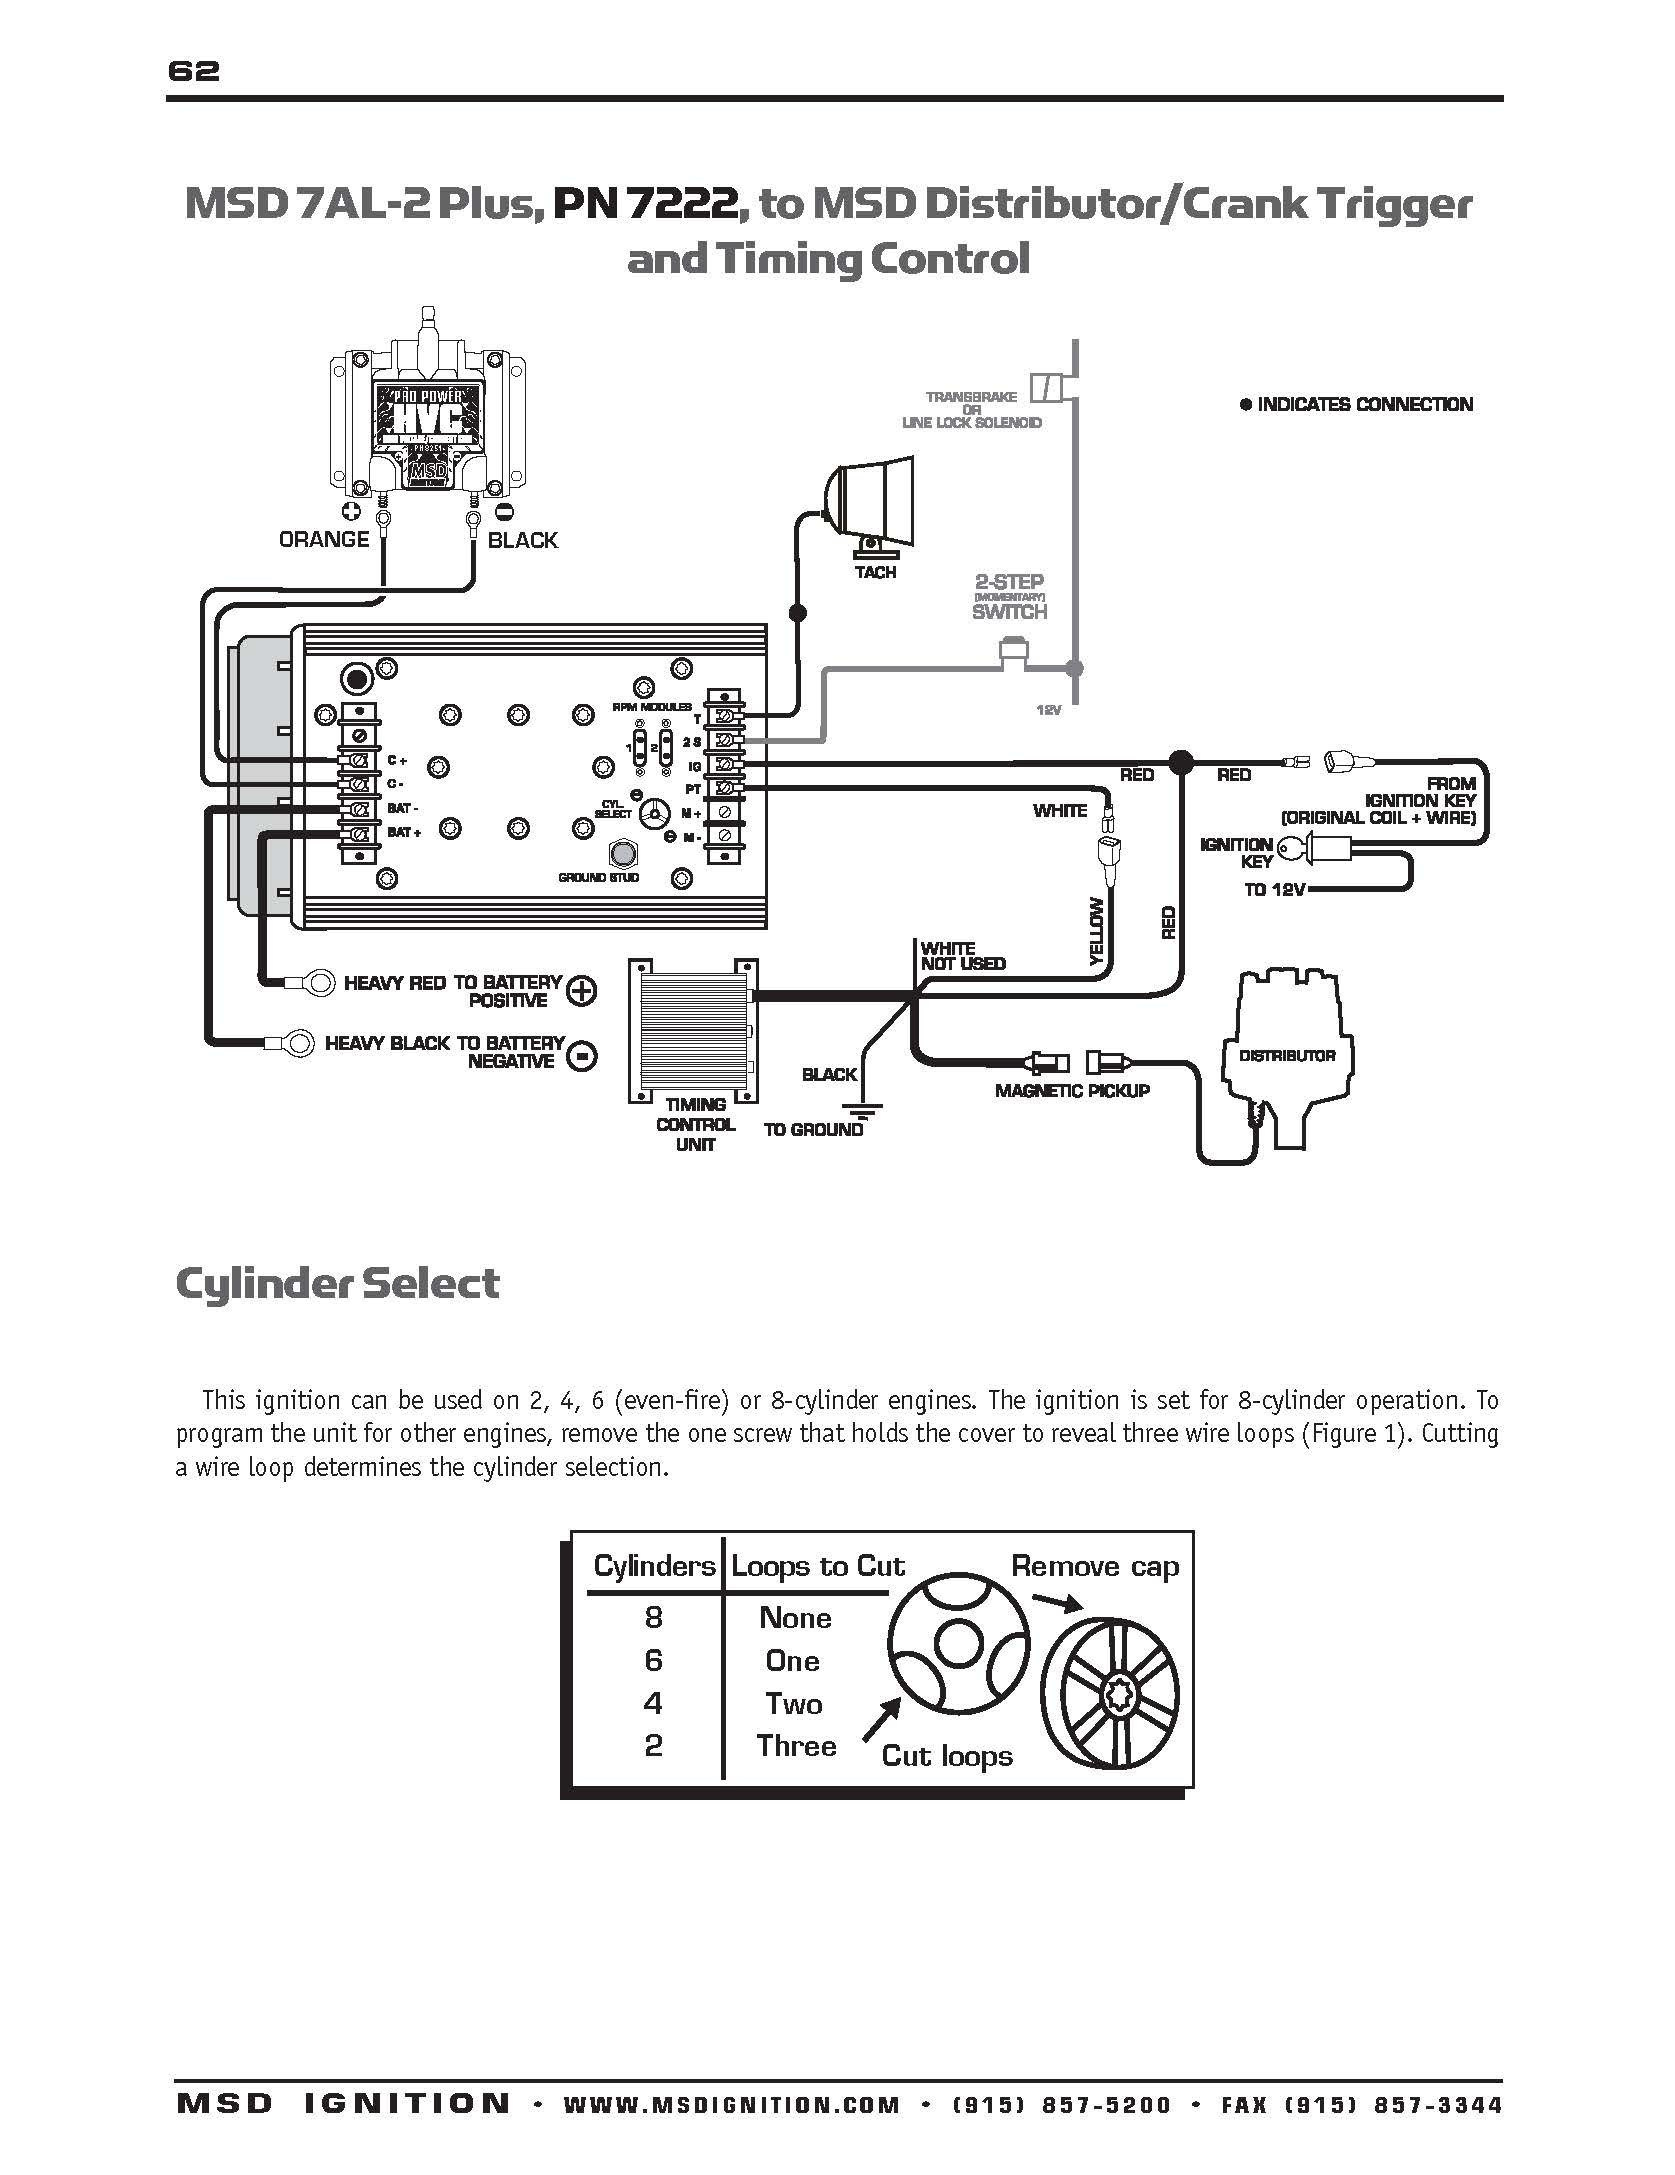 Mallory Wiring Diagram 351 | Wiring Diagram - Mallory Ignition Wiring Diagram